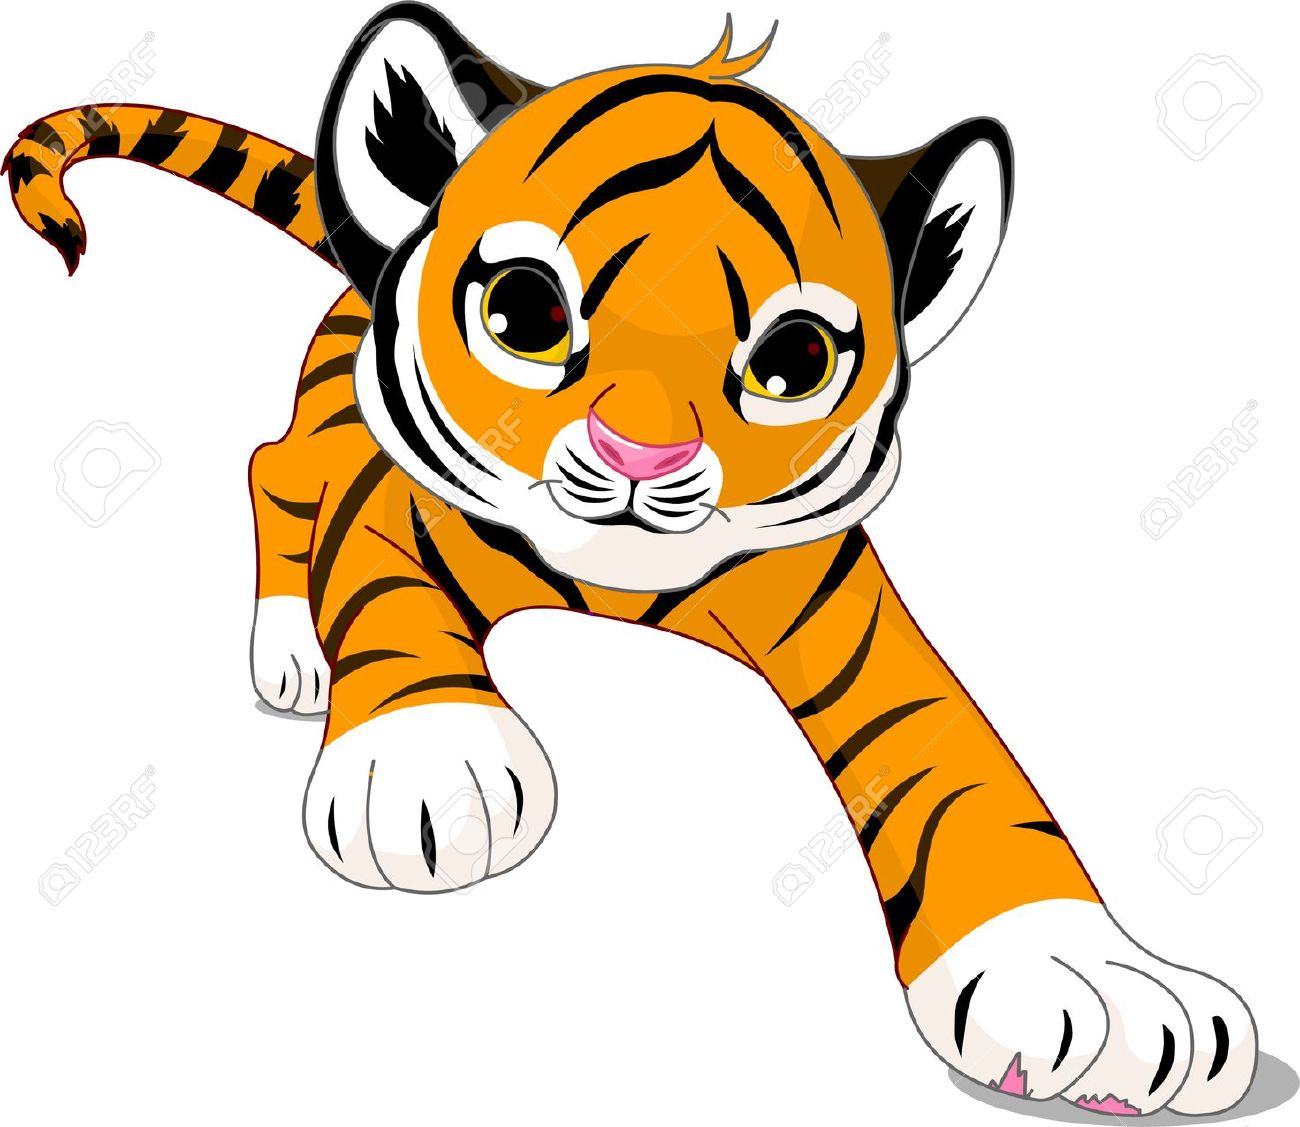 Tiger clipart little #1